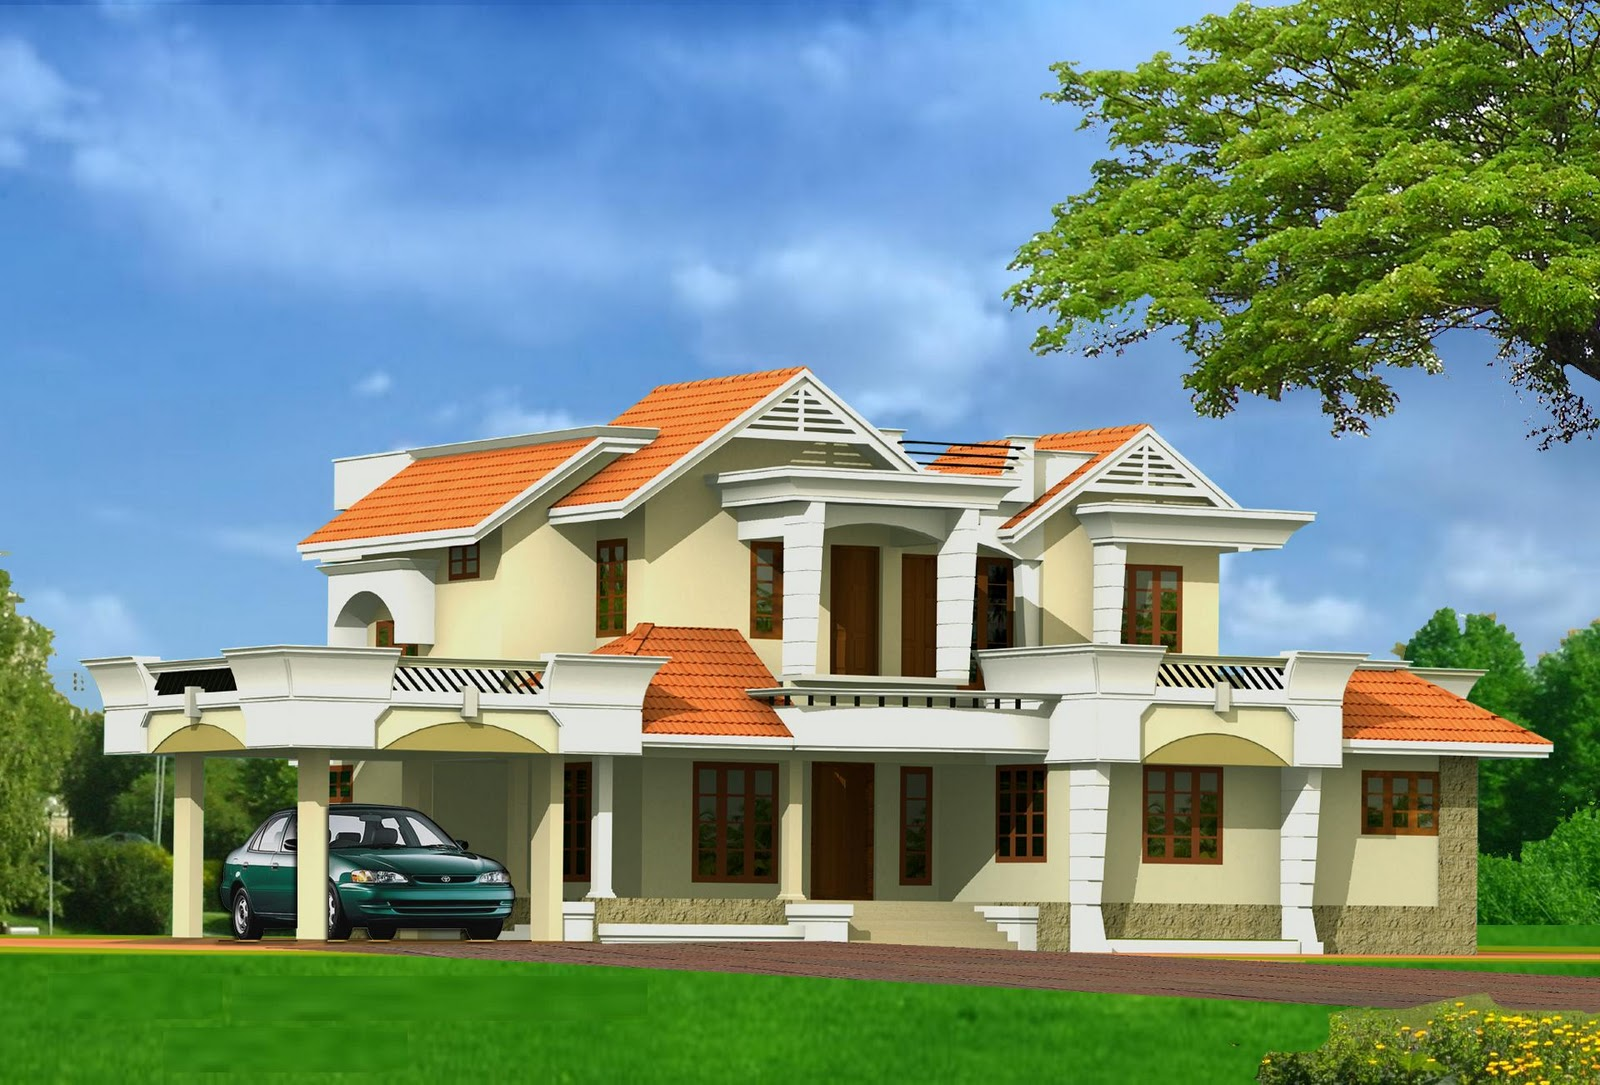 House plans and design architectural designs of residential buildings Residential building plans